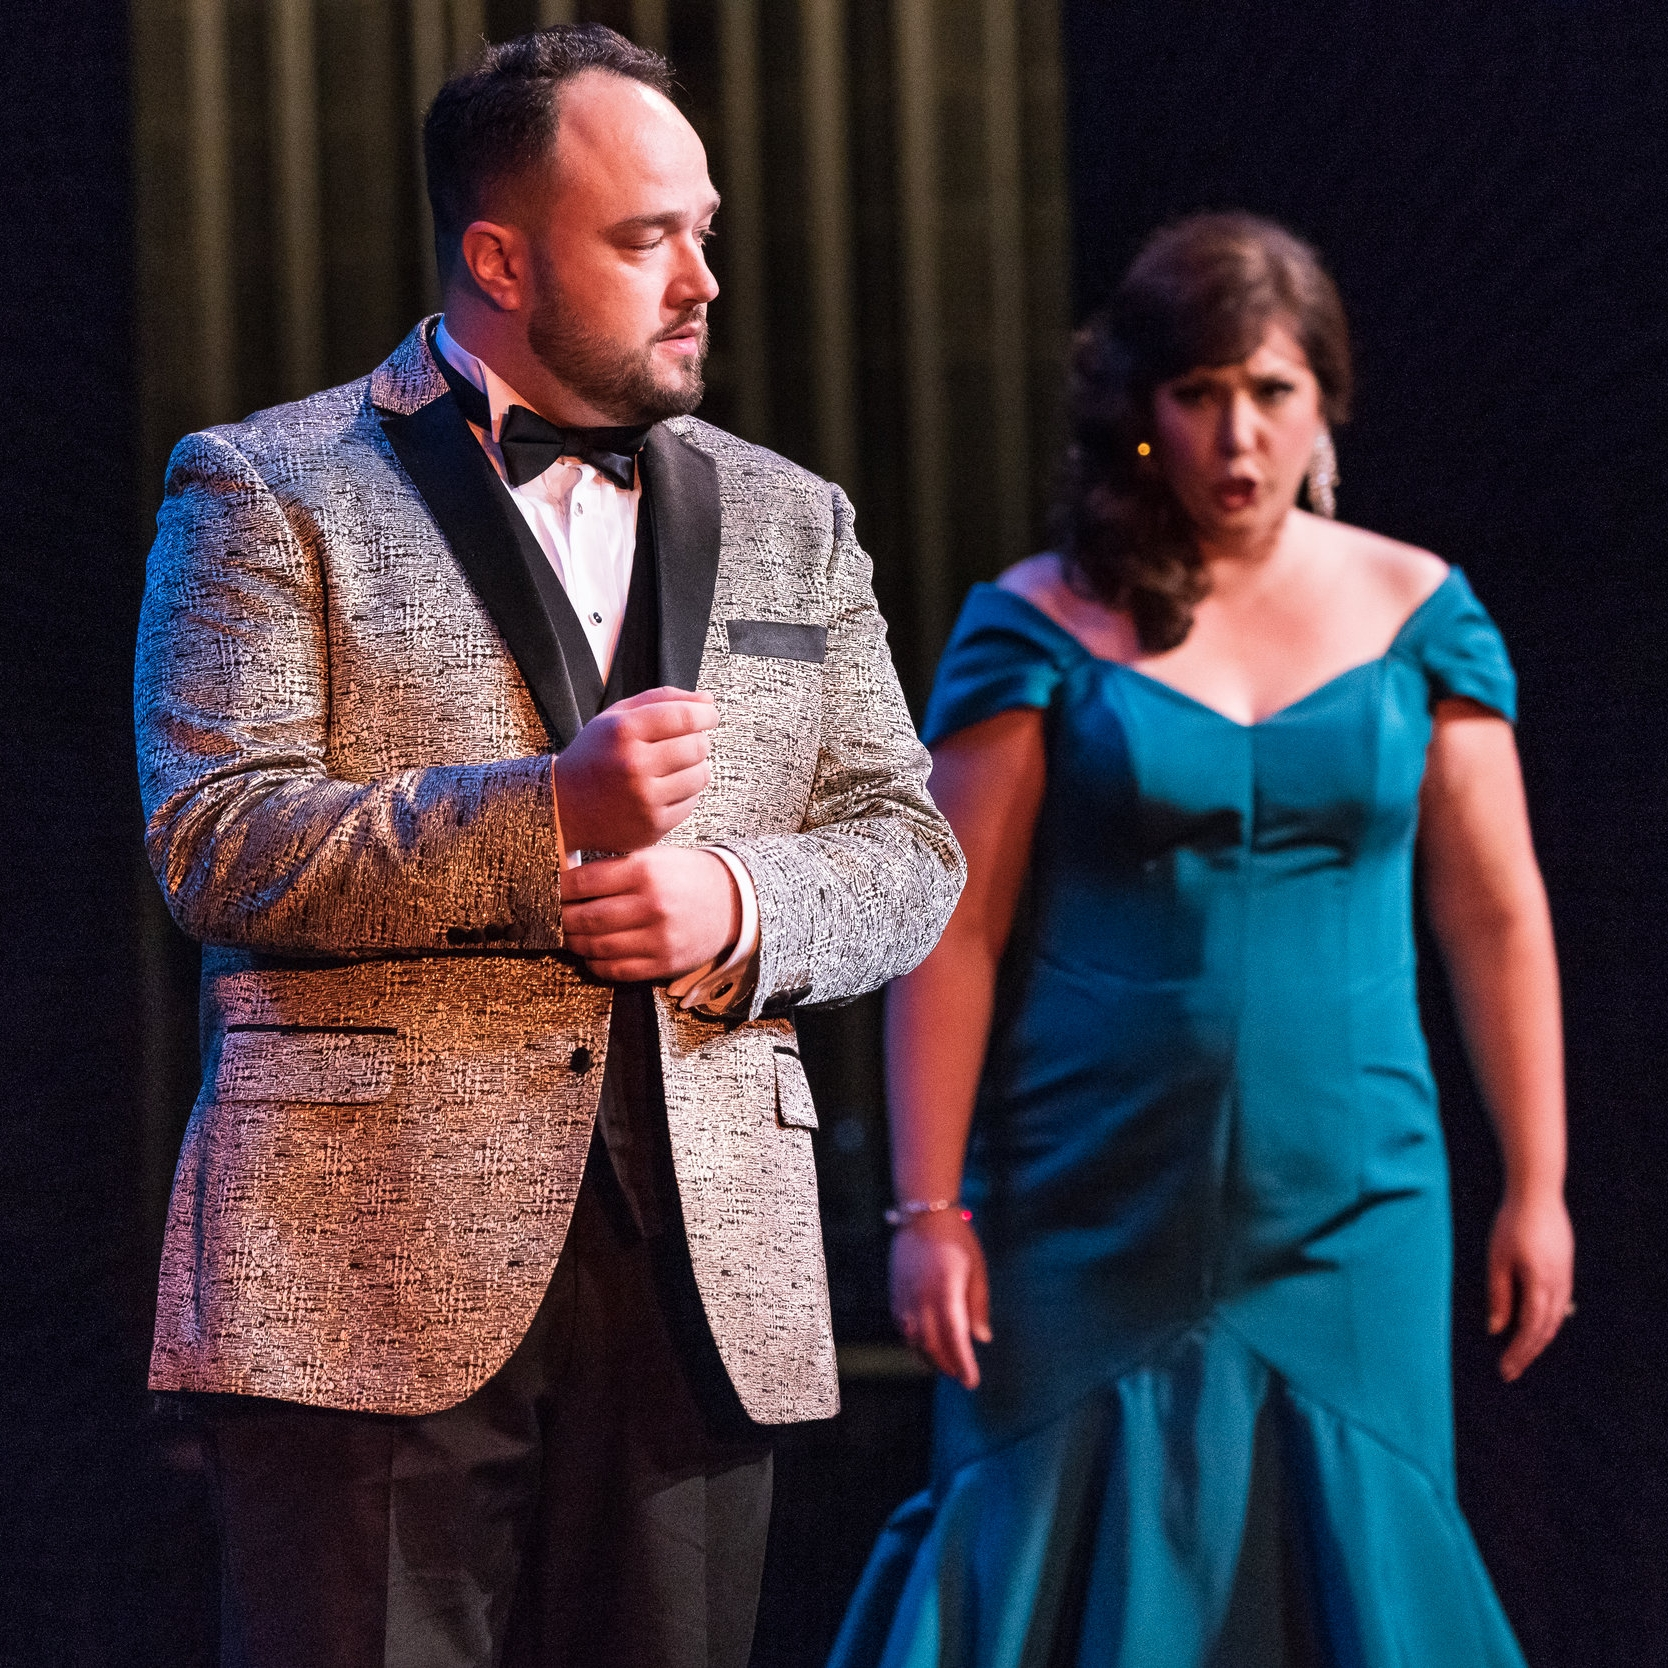 ArtsJournal: Mayr's Medea at Teatro Nuovo: Stars evolved and aligned for the opera and La Rowley - July 31, 2018